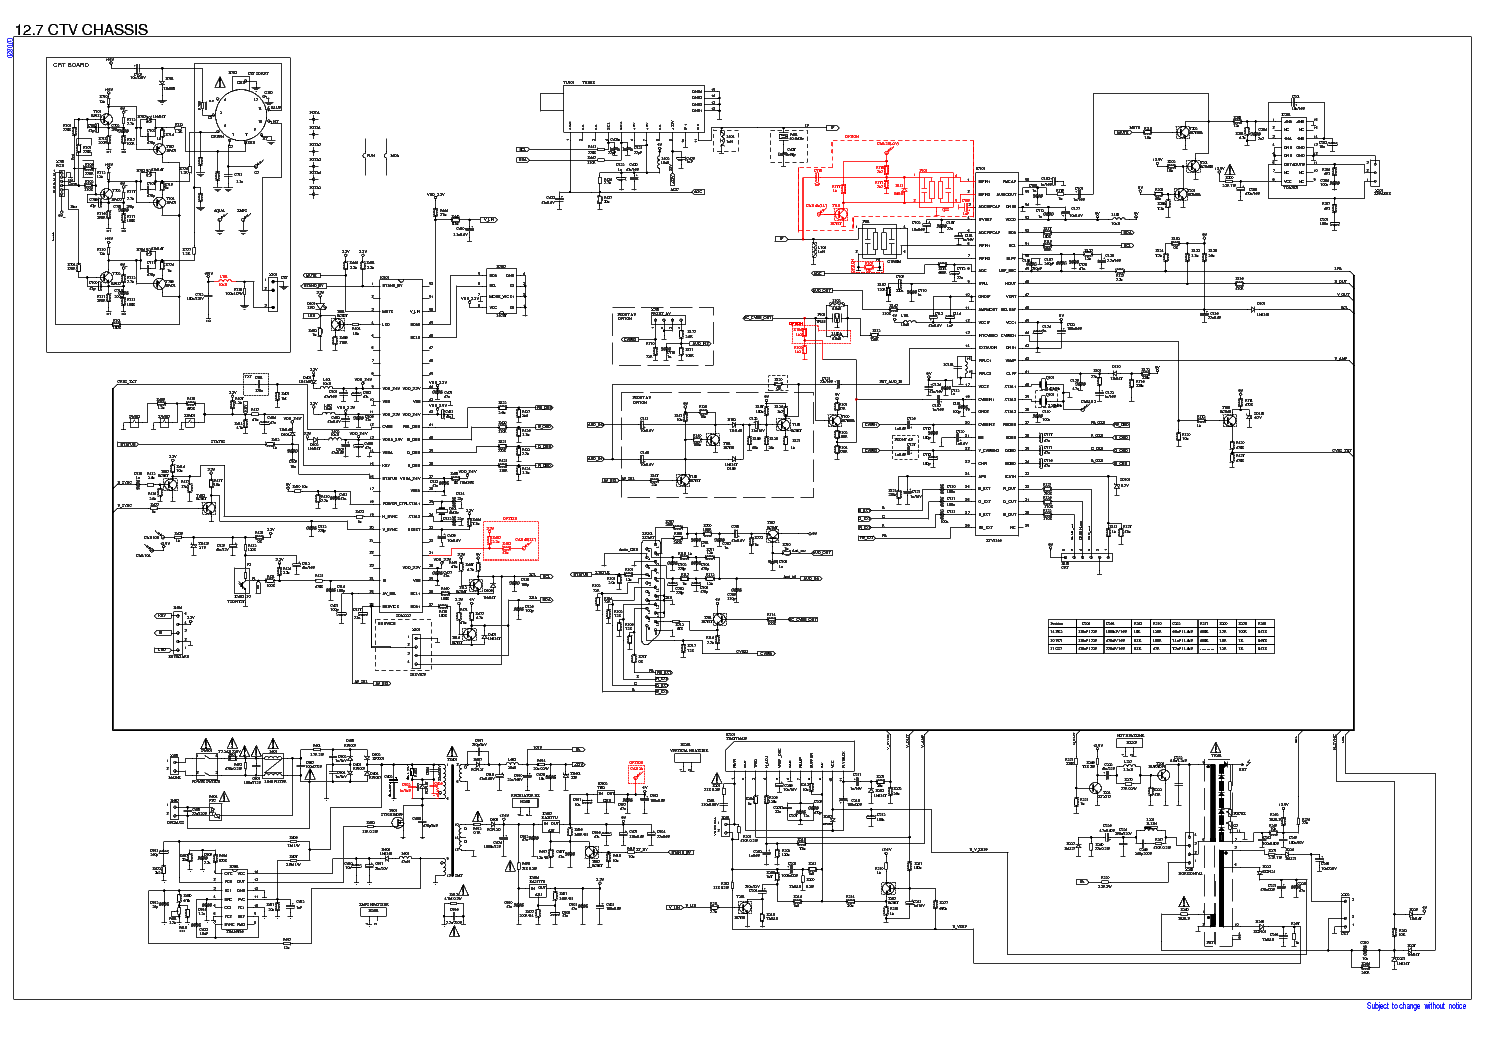 hight resolution of electronics schematics pdf wiring diagram compilation circuit schematic software circuit schematics pdf